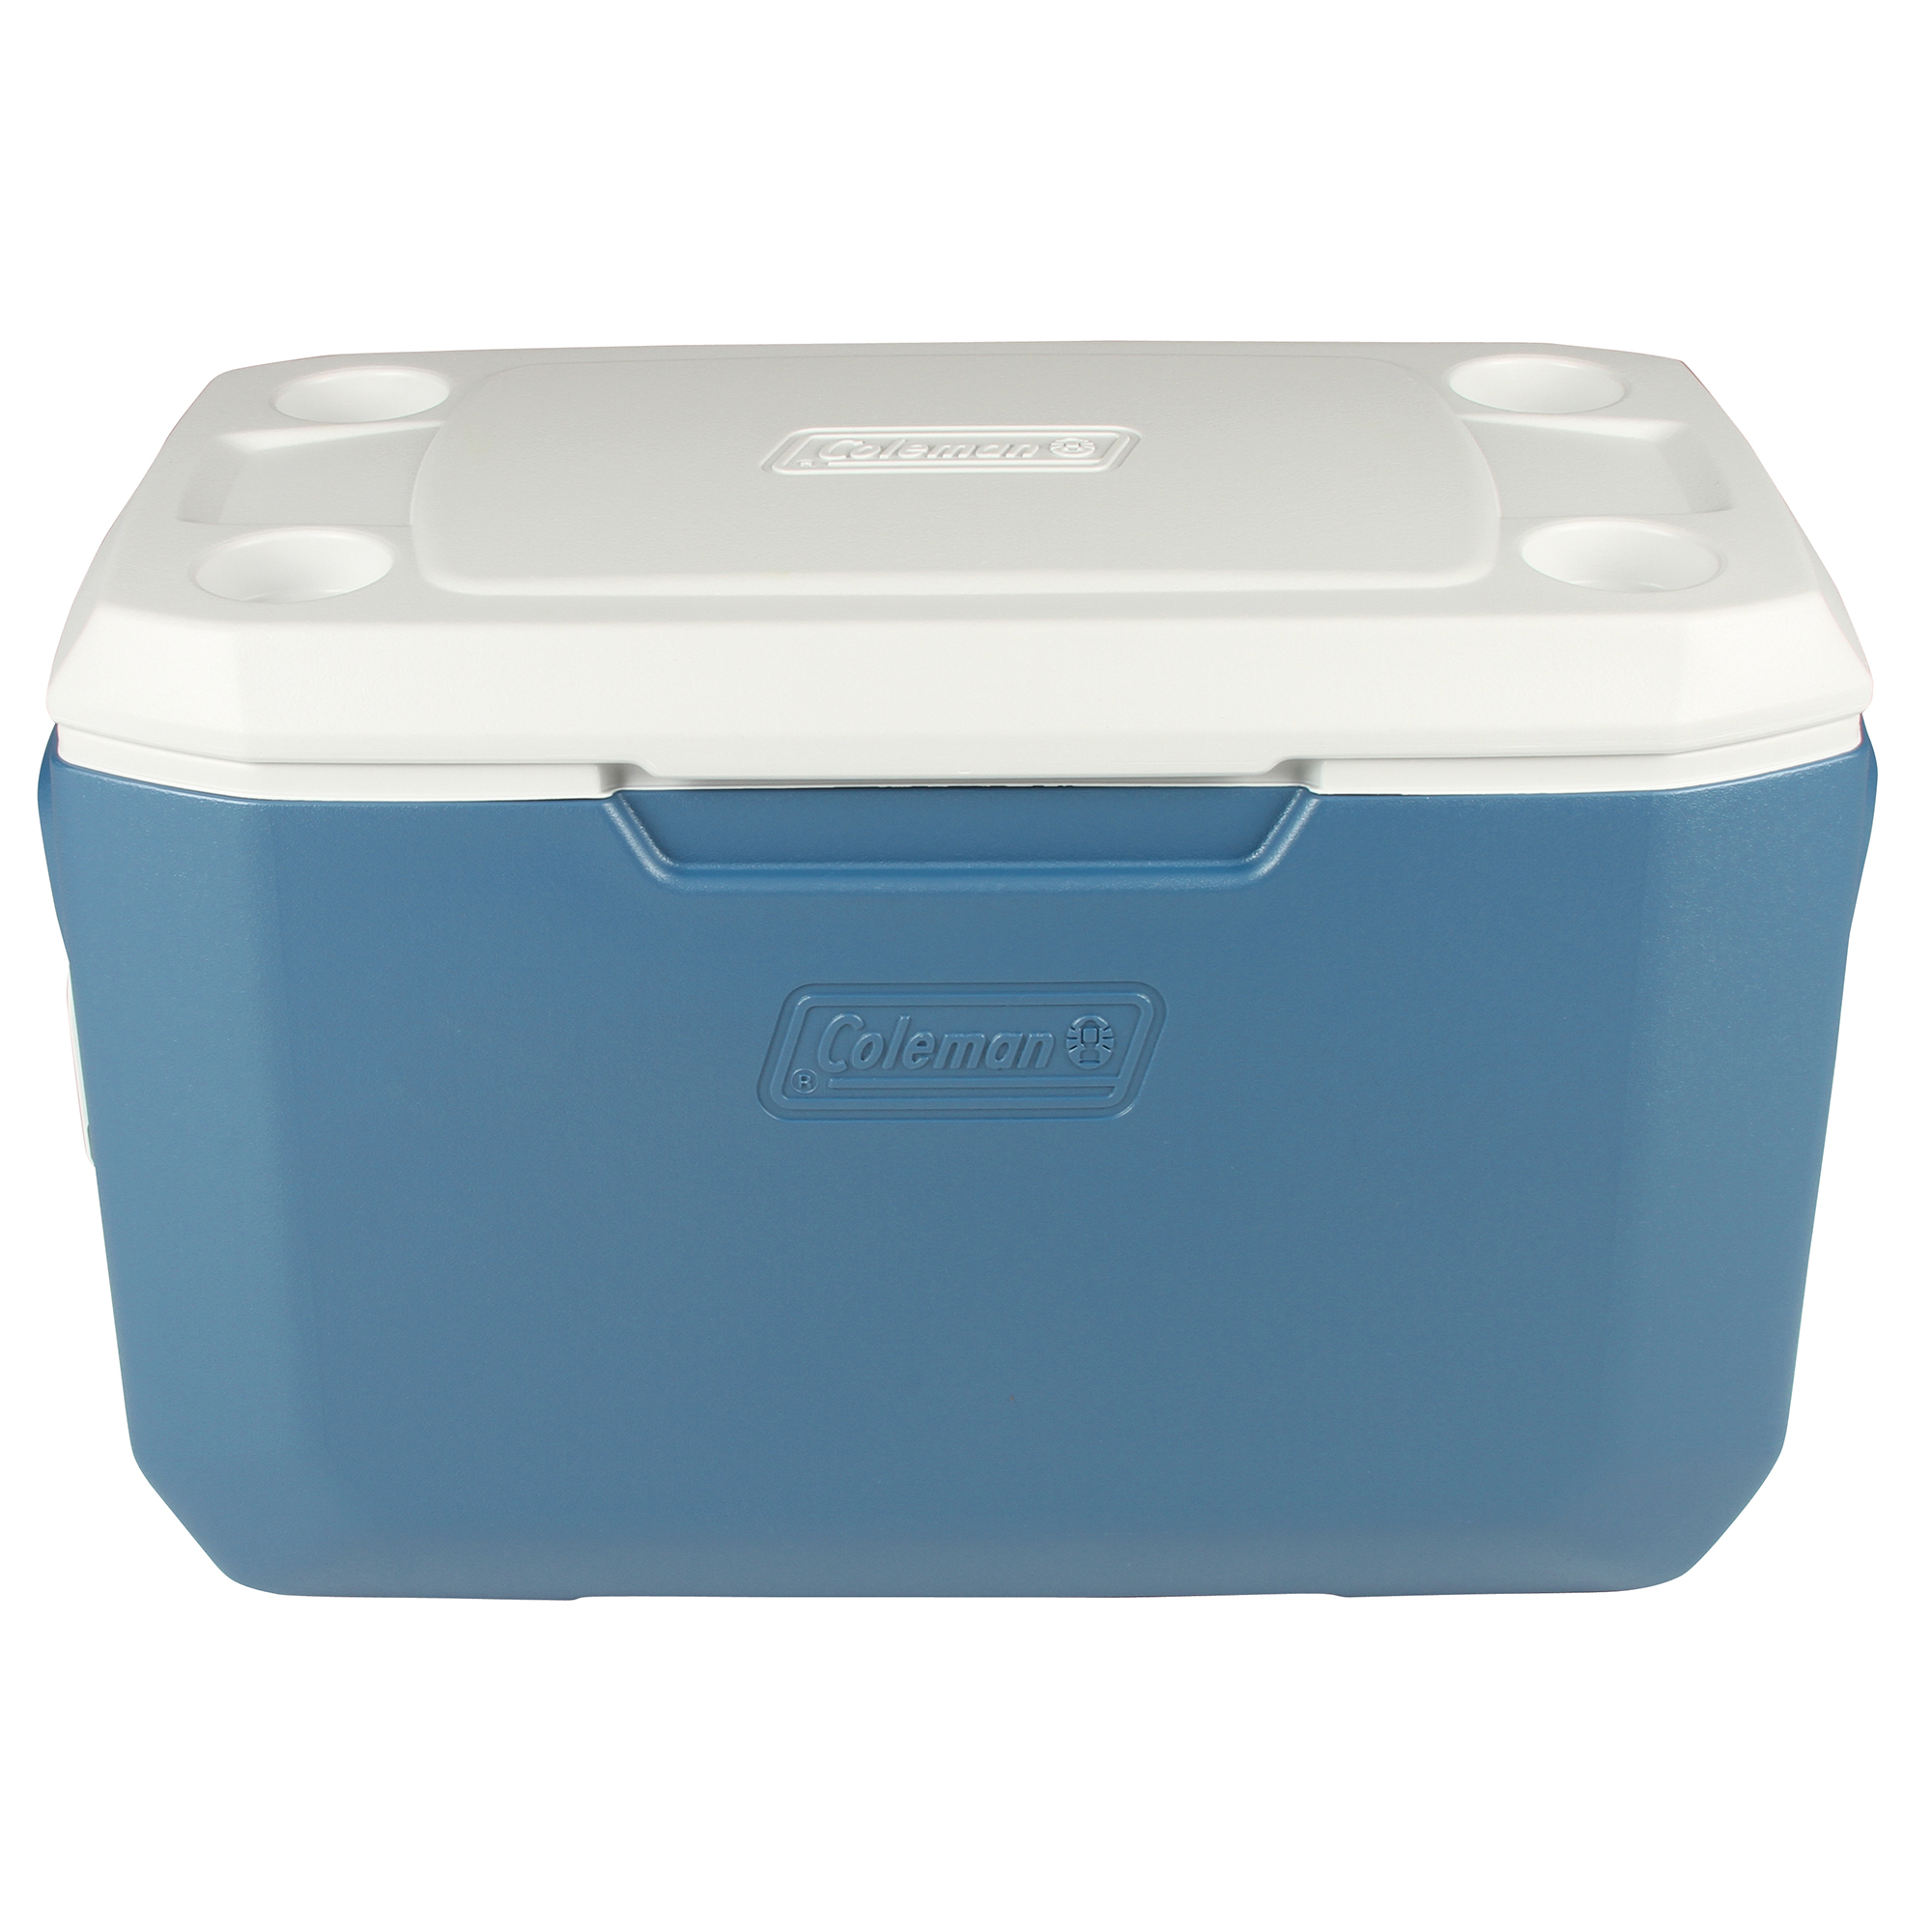 Coleman 70-Quart Xtreme 5-Day Heavy-Duty Cooler, Blue by COLEMAN